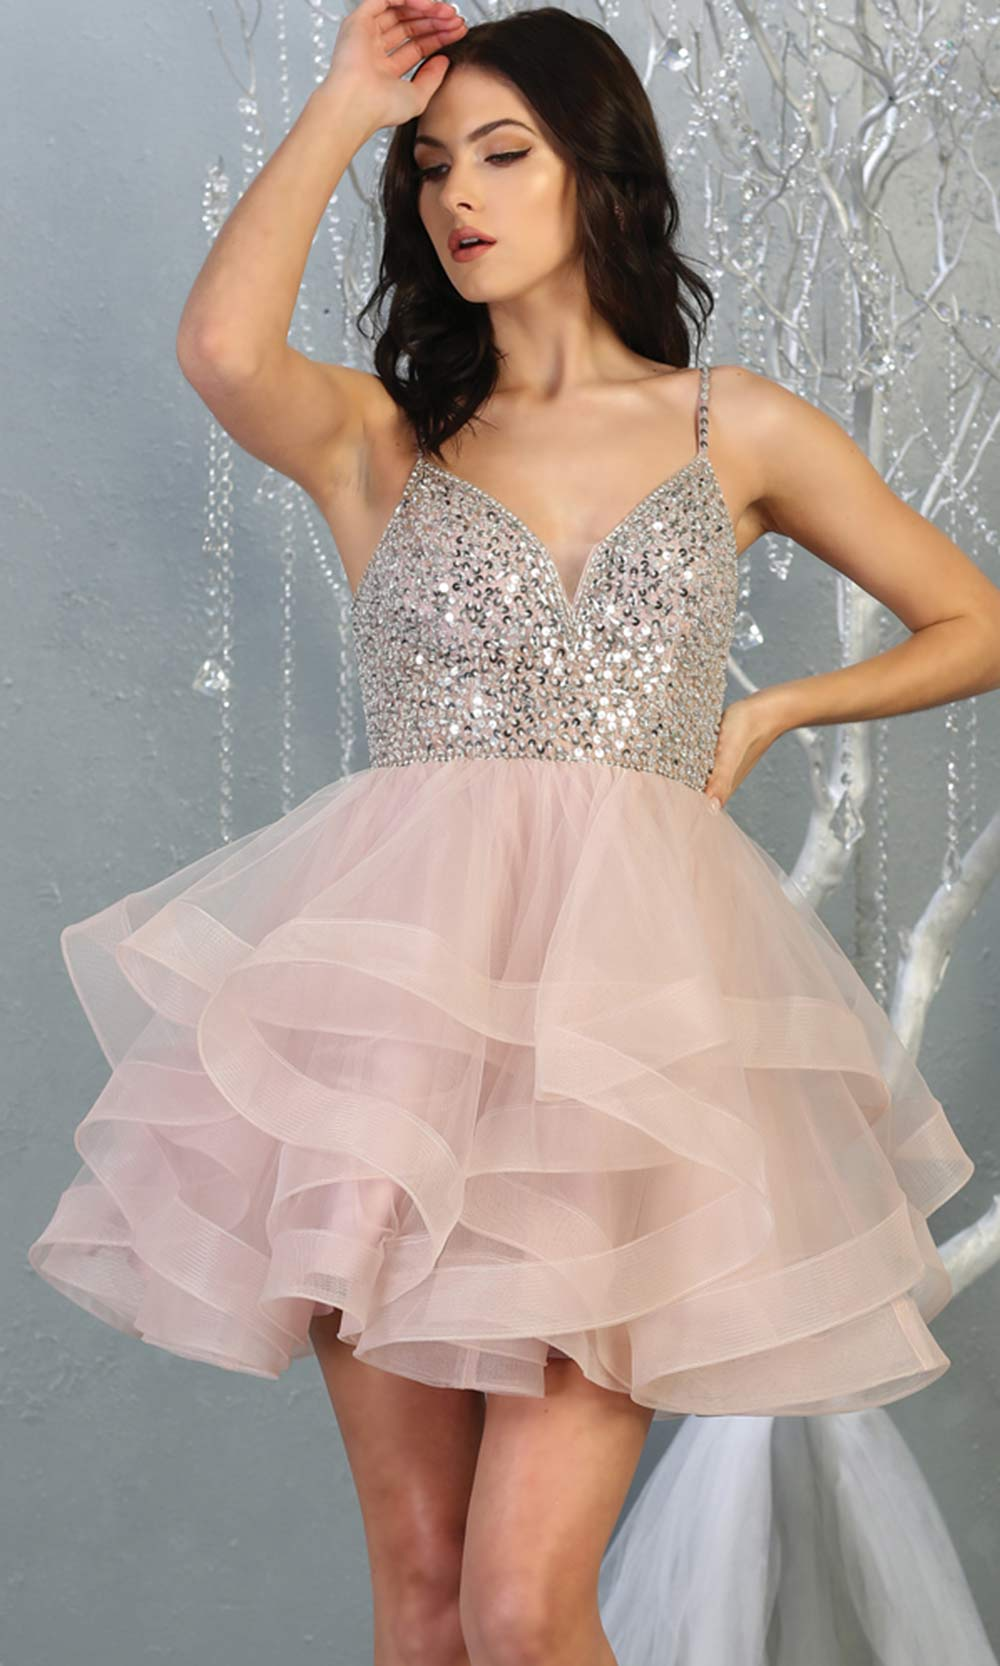 Mayqueen MQ1818 short mauve v neck flowy grade 8 graduation dress w/beaded top & puffy tier skirt. Dusty rose party dress is perfect for prom, graduation, grade 8 grad, confirmation dress, bat mitzvah dress, damas. Plus sizes avail for grad dress.jpg